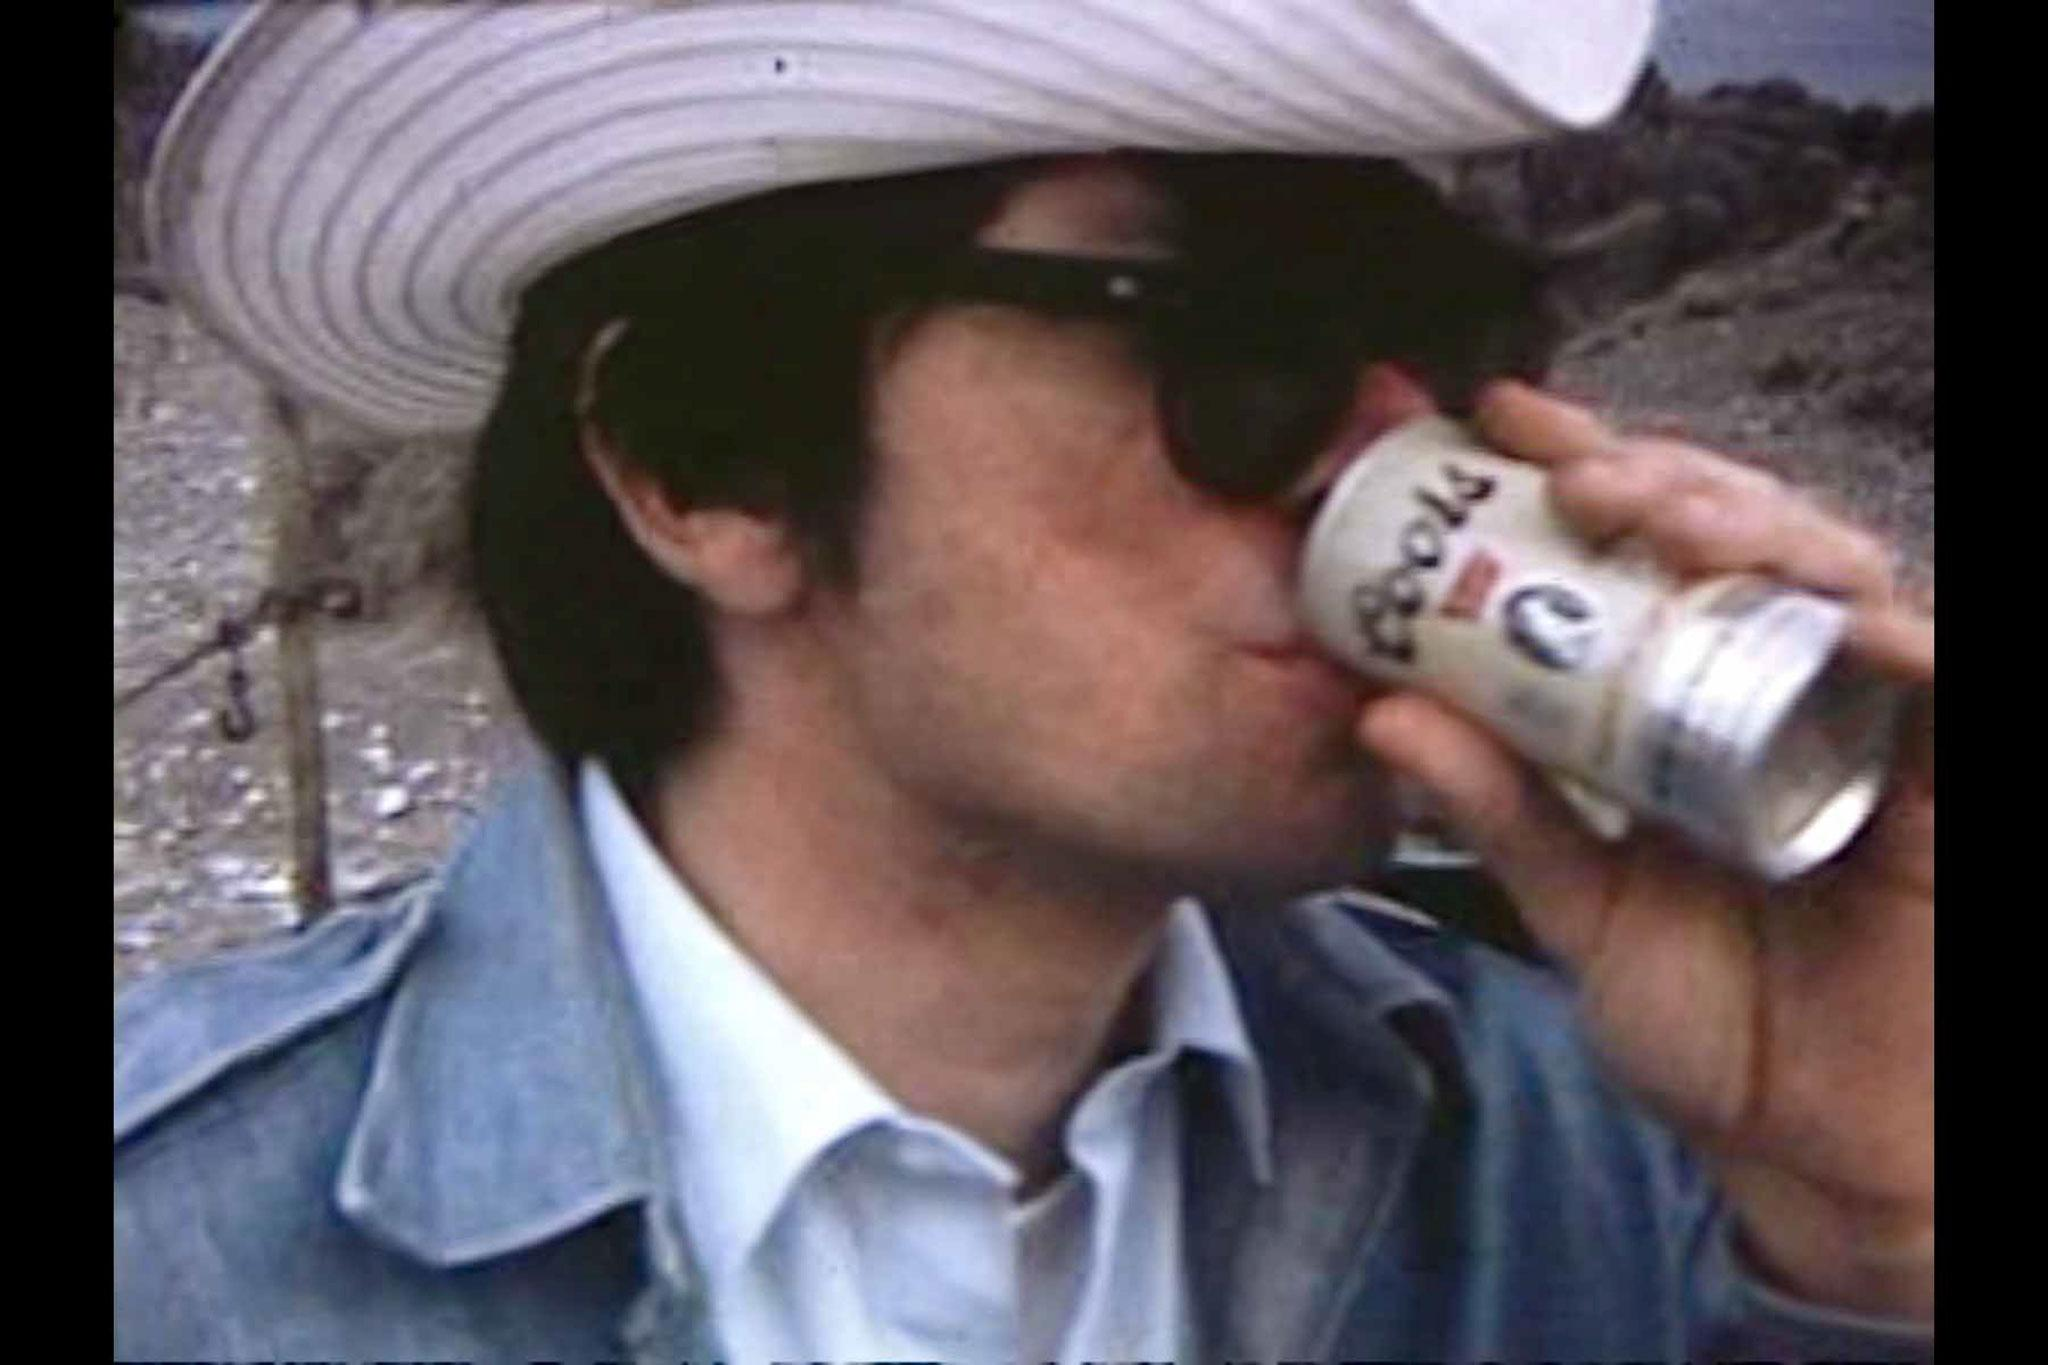 A man wearing a cowboy hat drinking a Coors beer